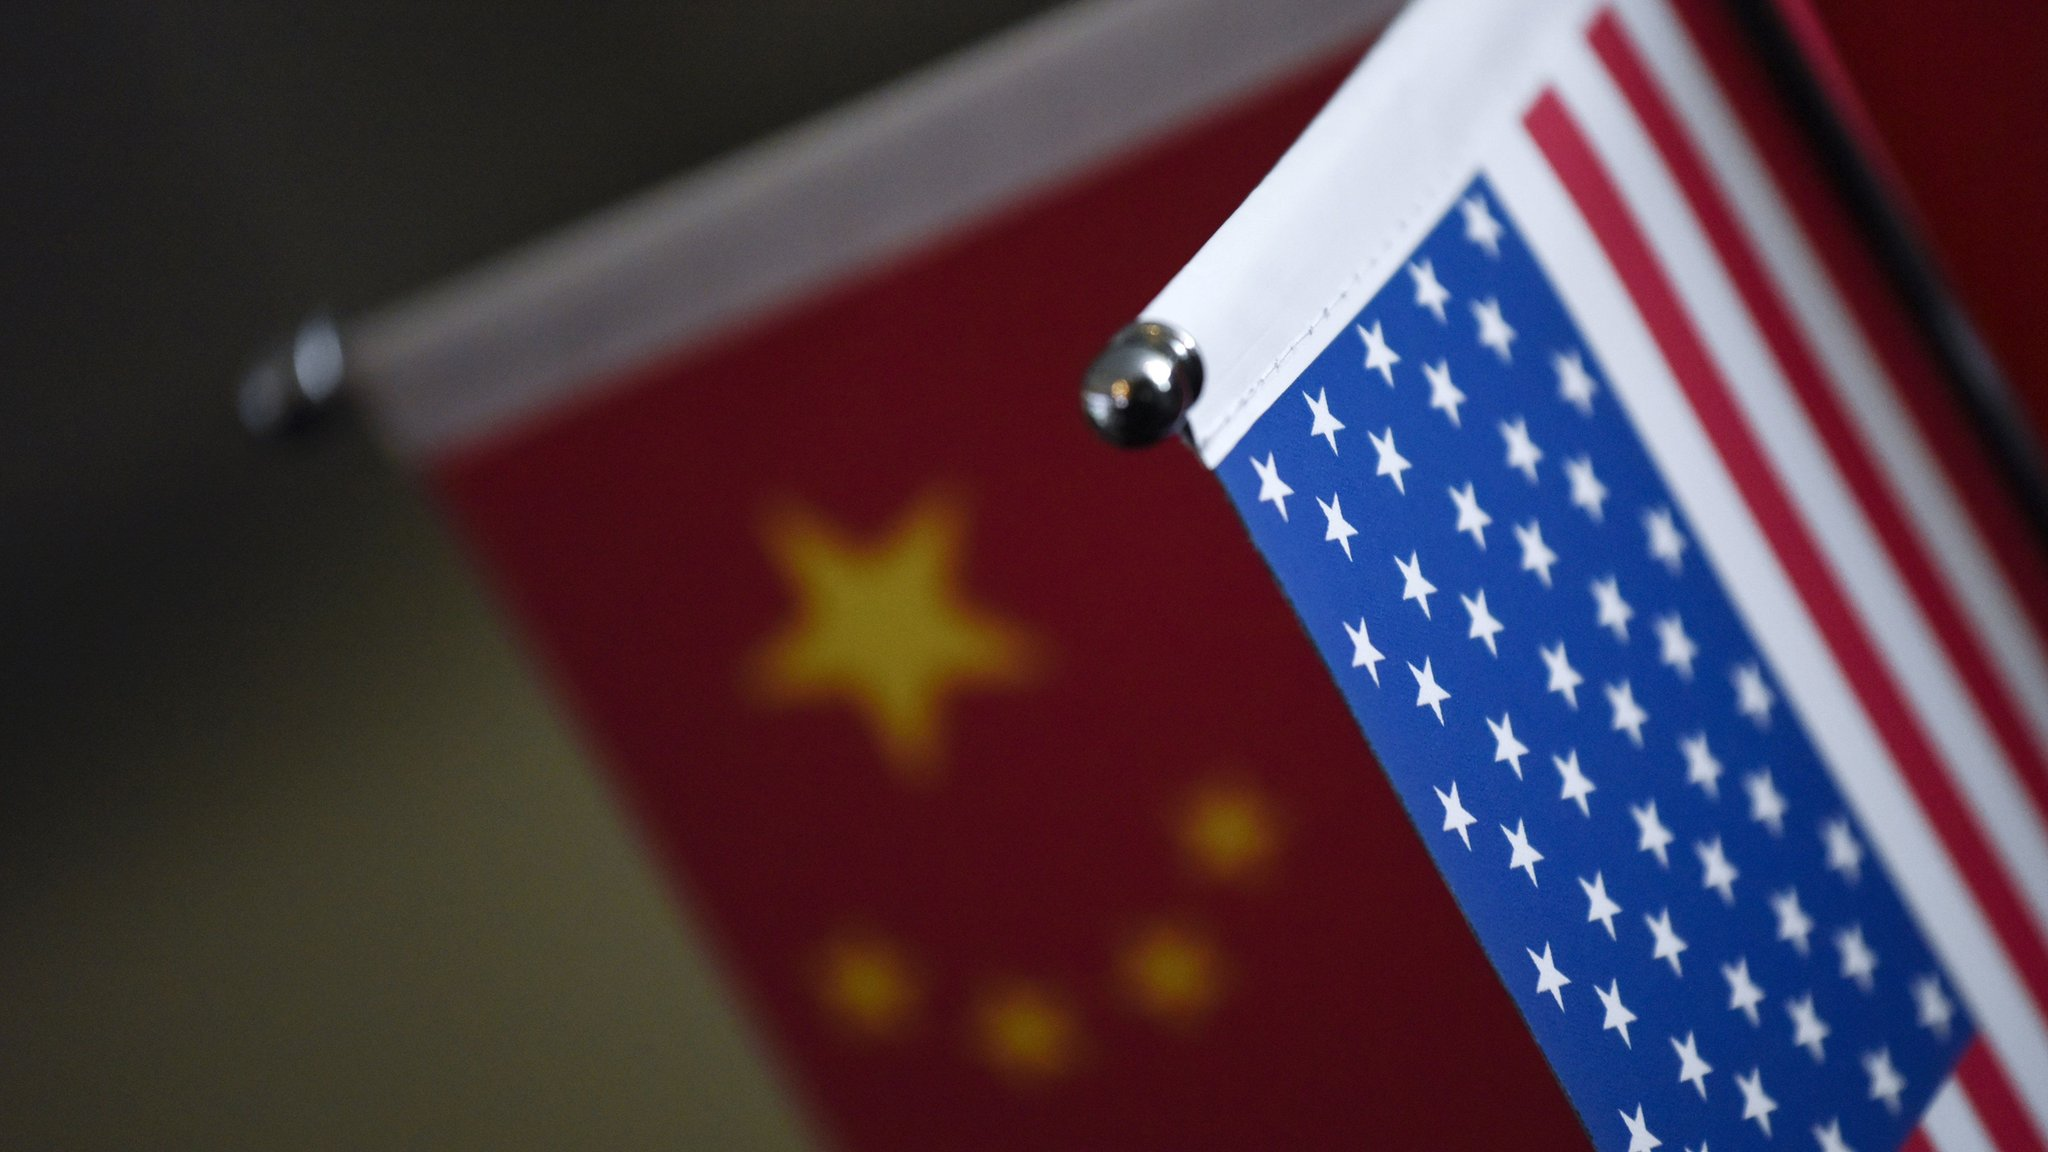 US to review China intellectual property policies